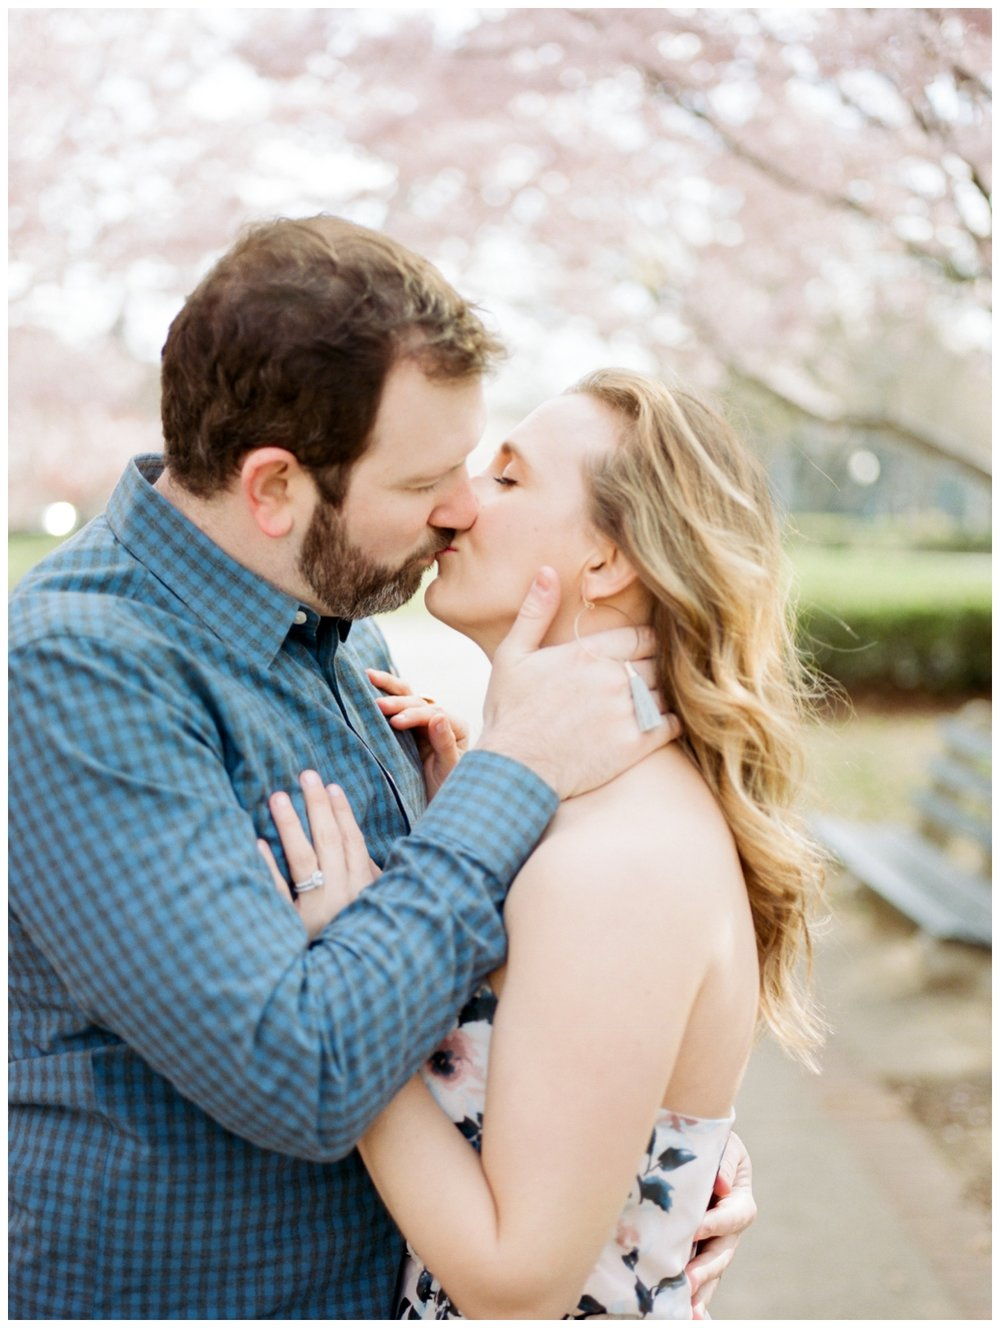 spring anniversary session with cherry blossoms on Capitol Hill in Washington DC by fine art wedding photographer Lissa Ryan Photography